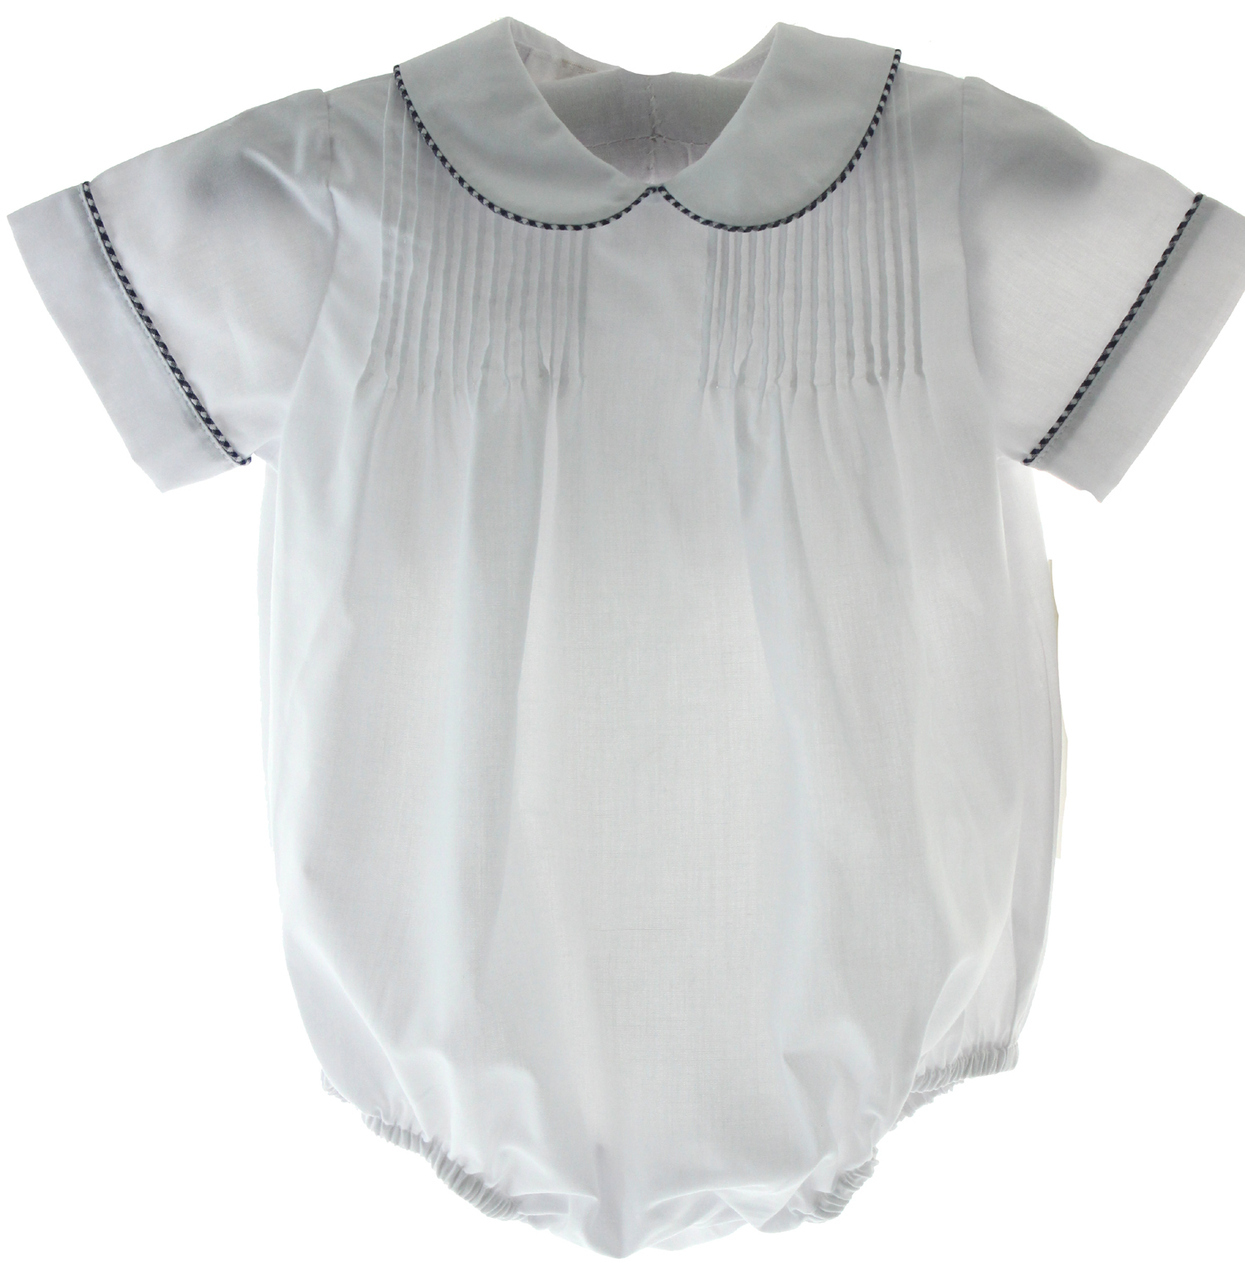 95f55ca69 Boys White Bubble Outfit Peter Pan Collar Navy Blue Trim